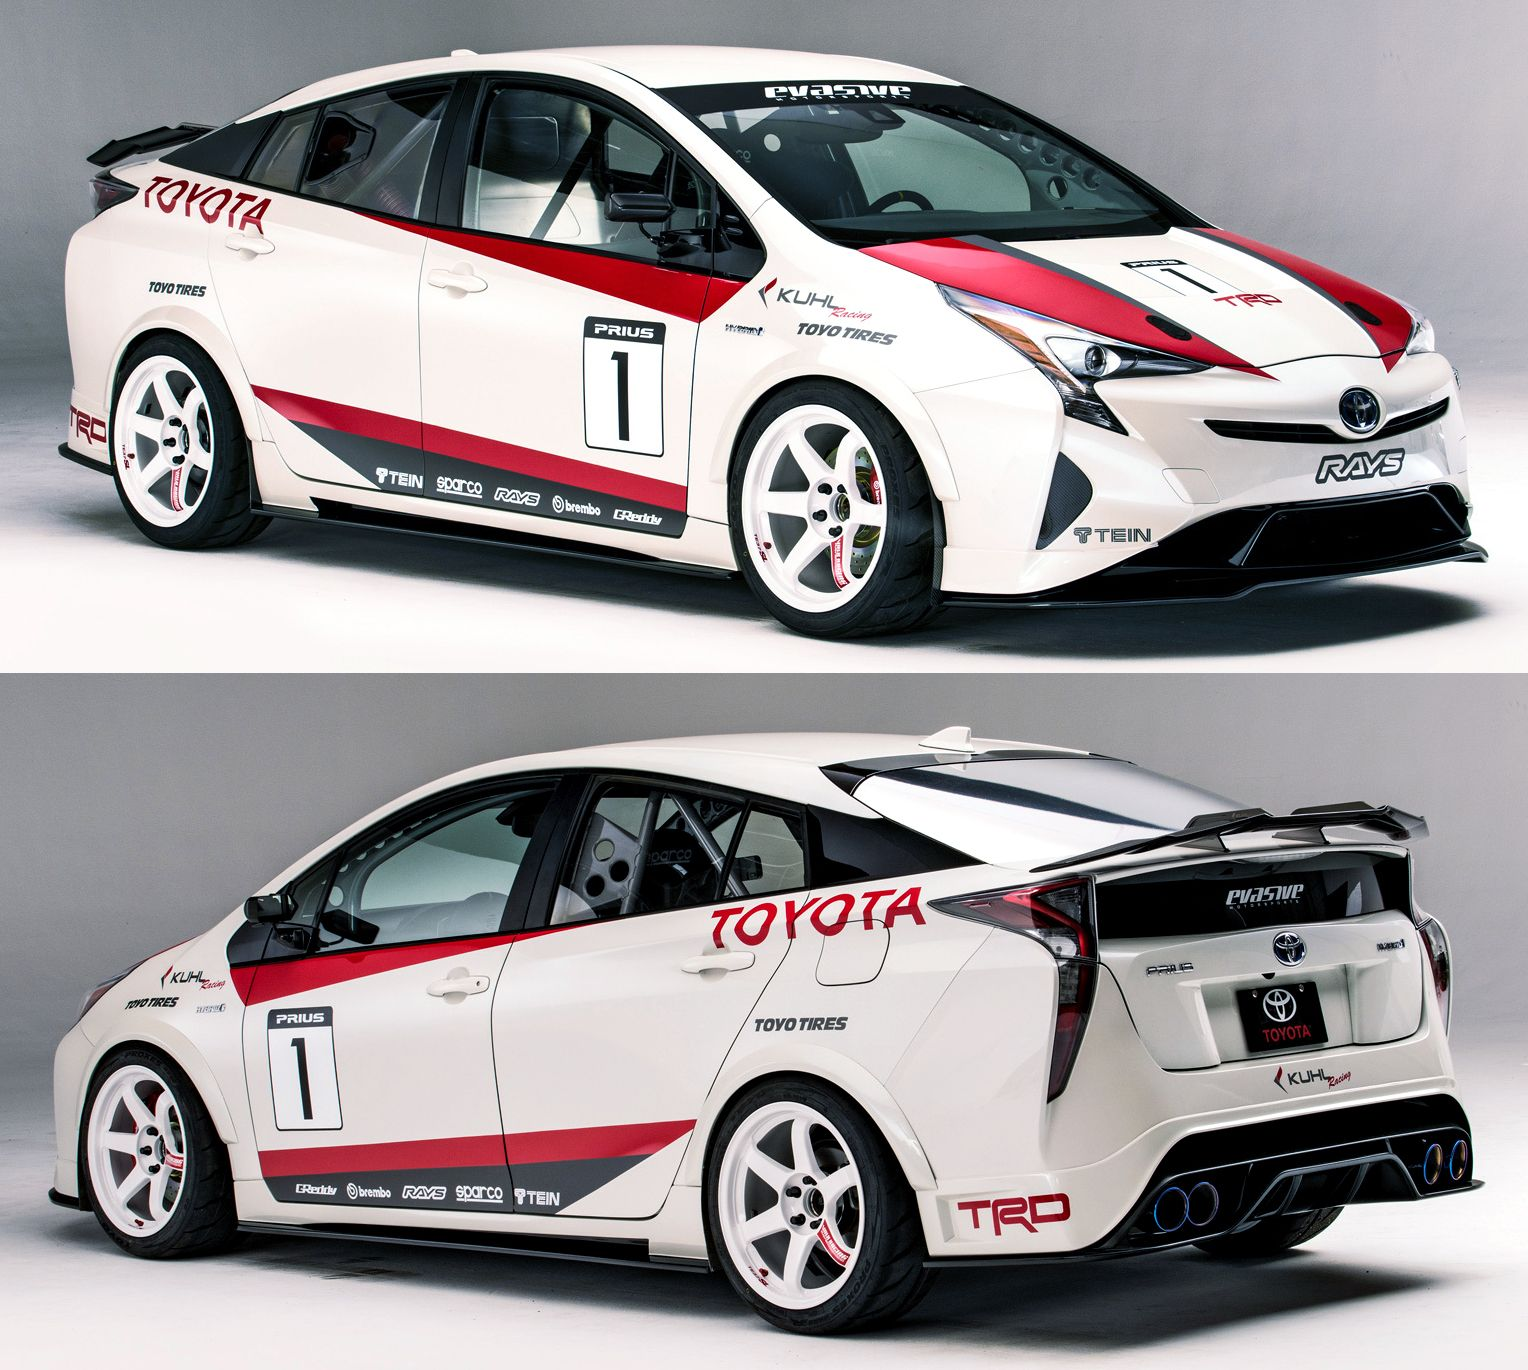 Toyota Prius G racing livery  We collect and generate ideas